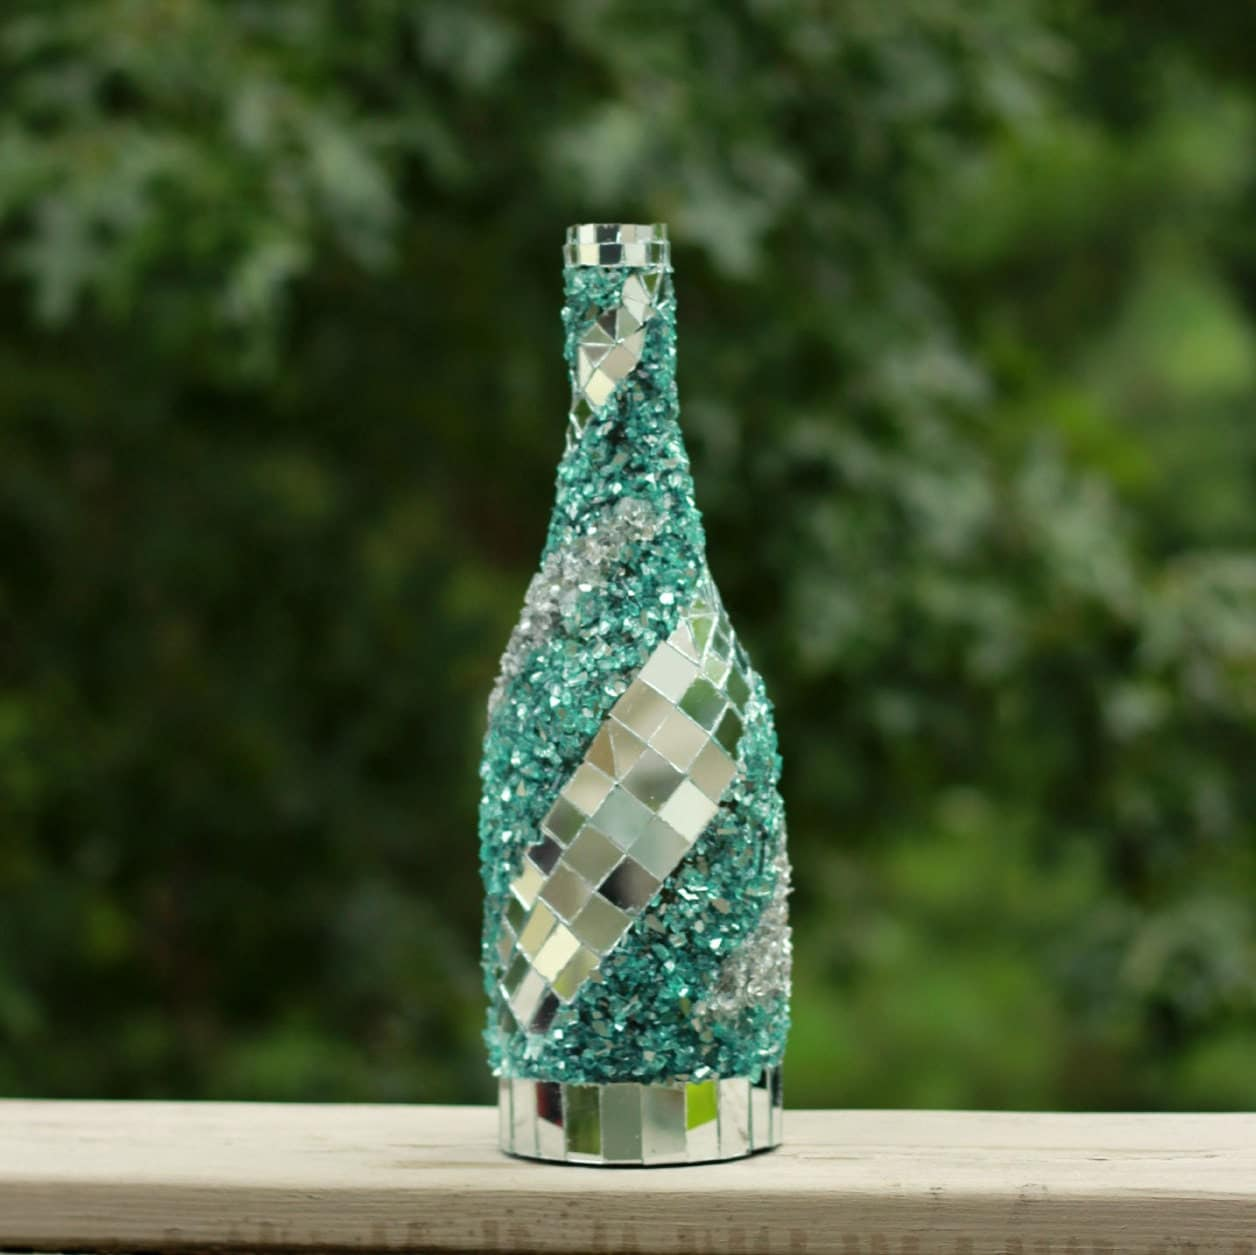 Mosaic mirror wine bottle wine bottle decor frozen glass for Glass home decor